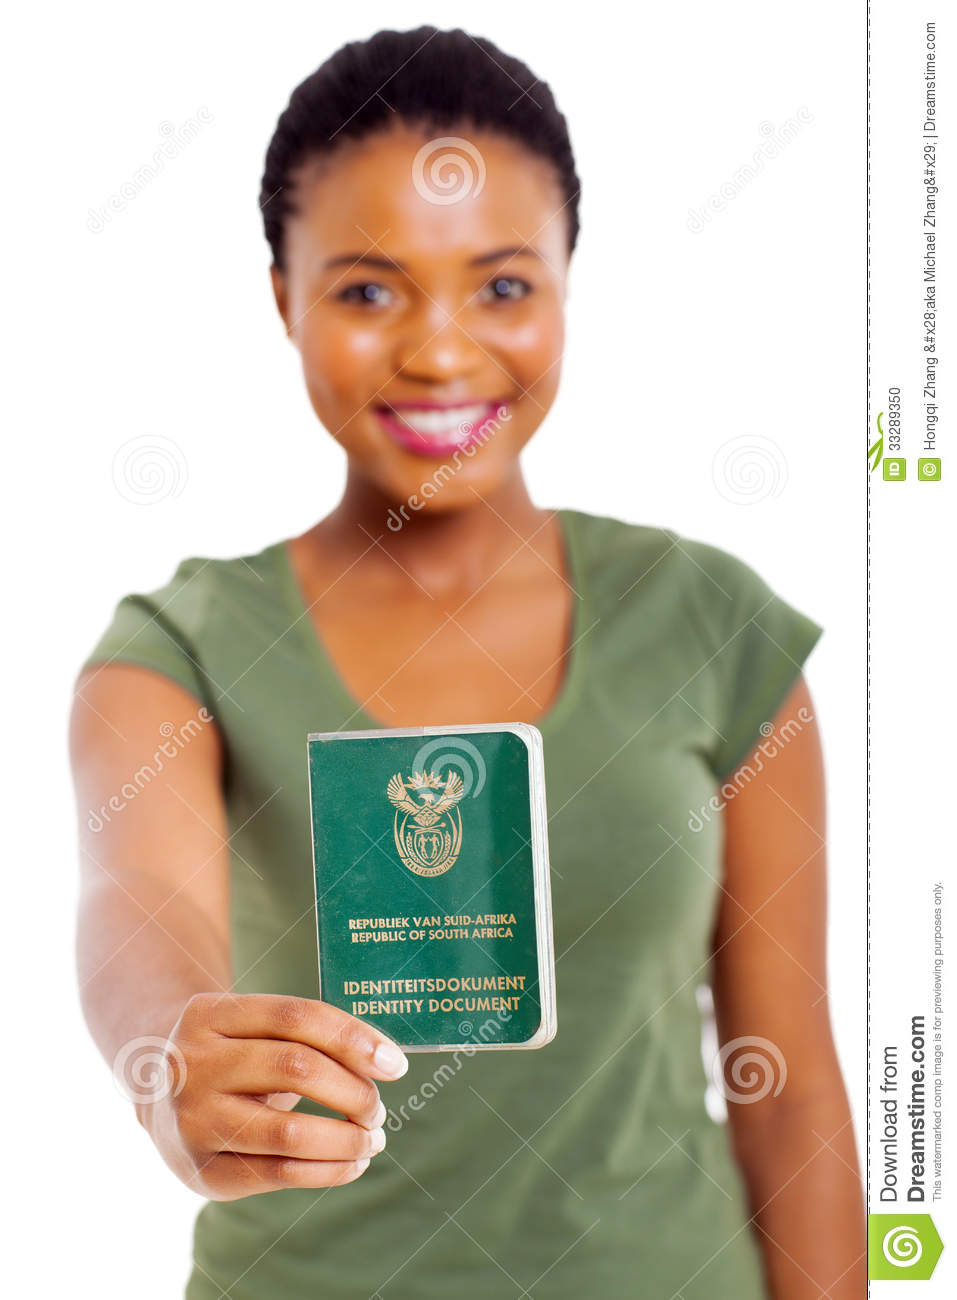 South African ID Book Stock Photo - Image: 33289350